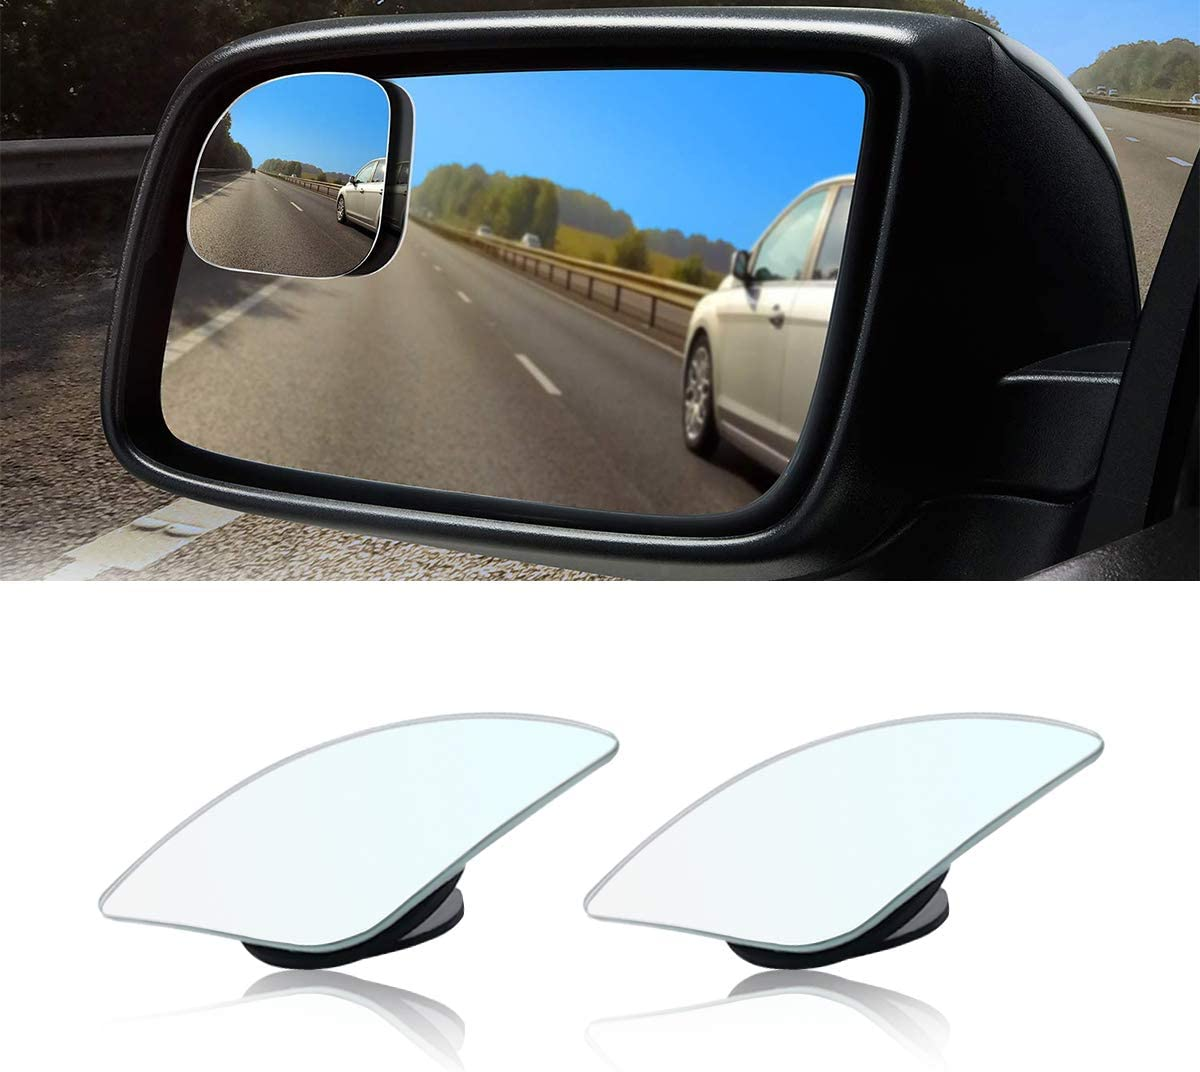 Car Blind Spot Mirror, Fan Shaped HD Glass Frameless Stick on Adjustabe Few Convex Wide Angle Rear View Mirror for Car Blind Spot, Pack of 2